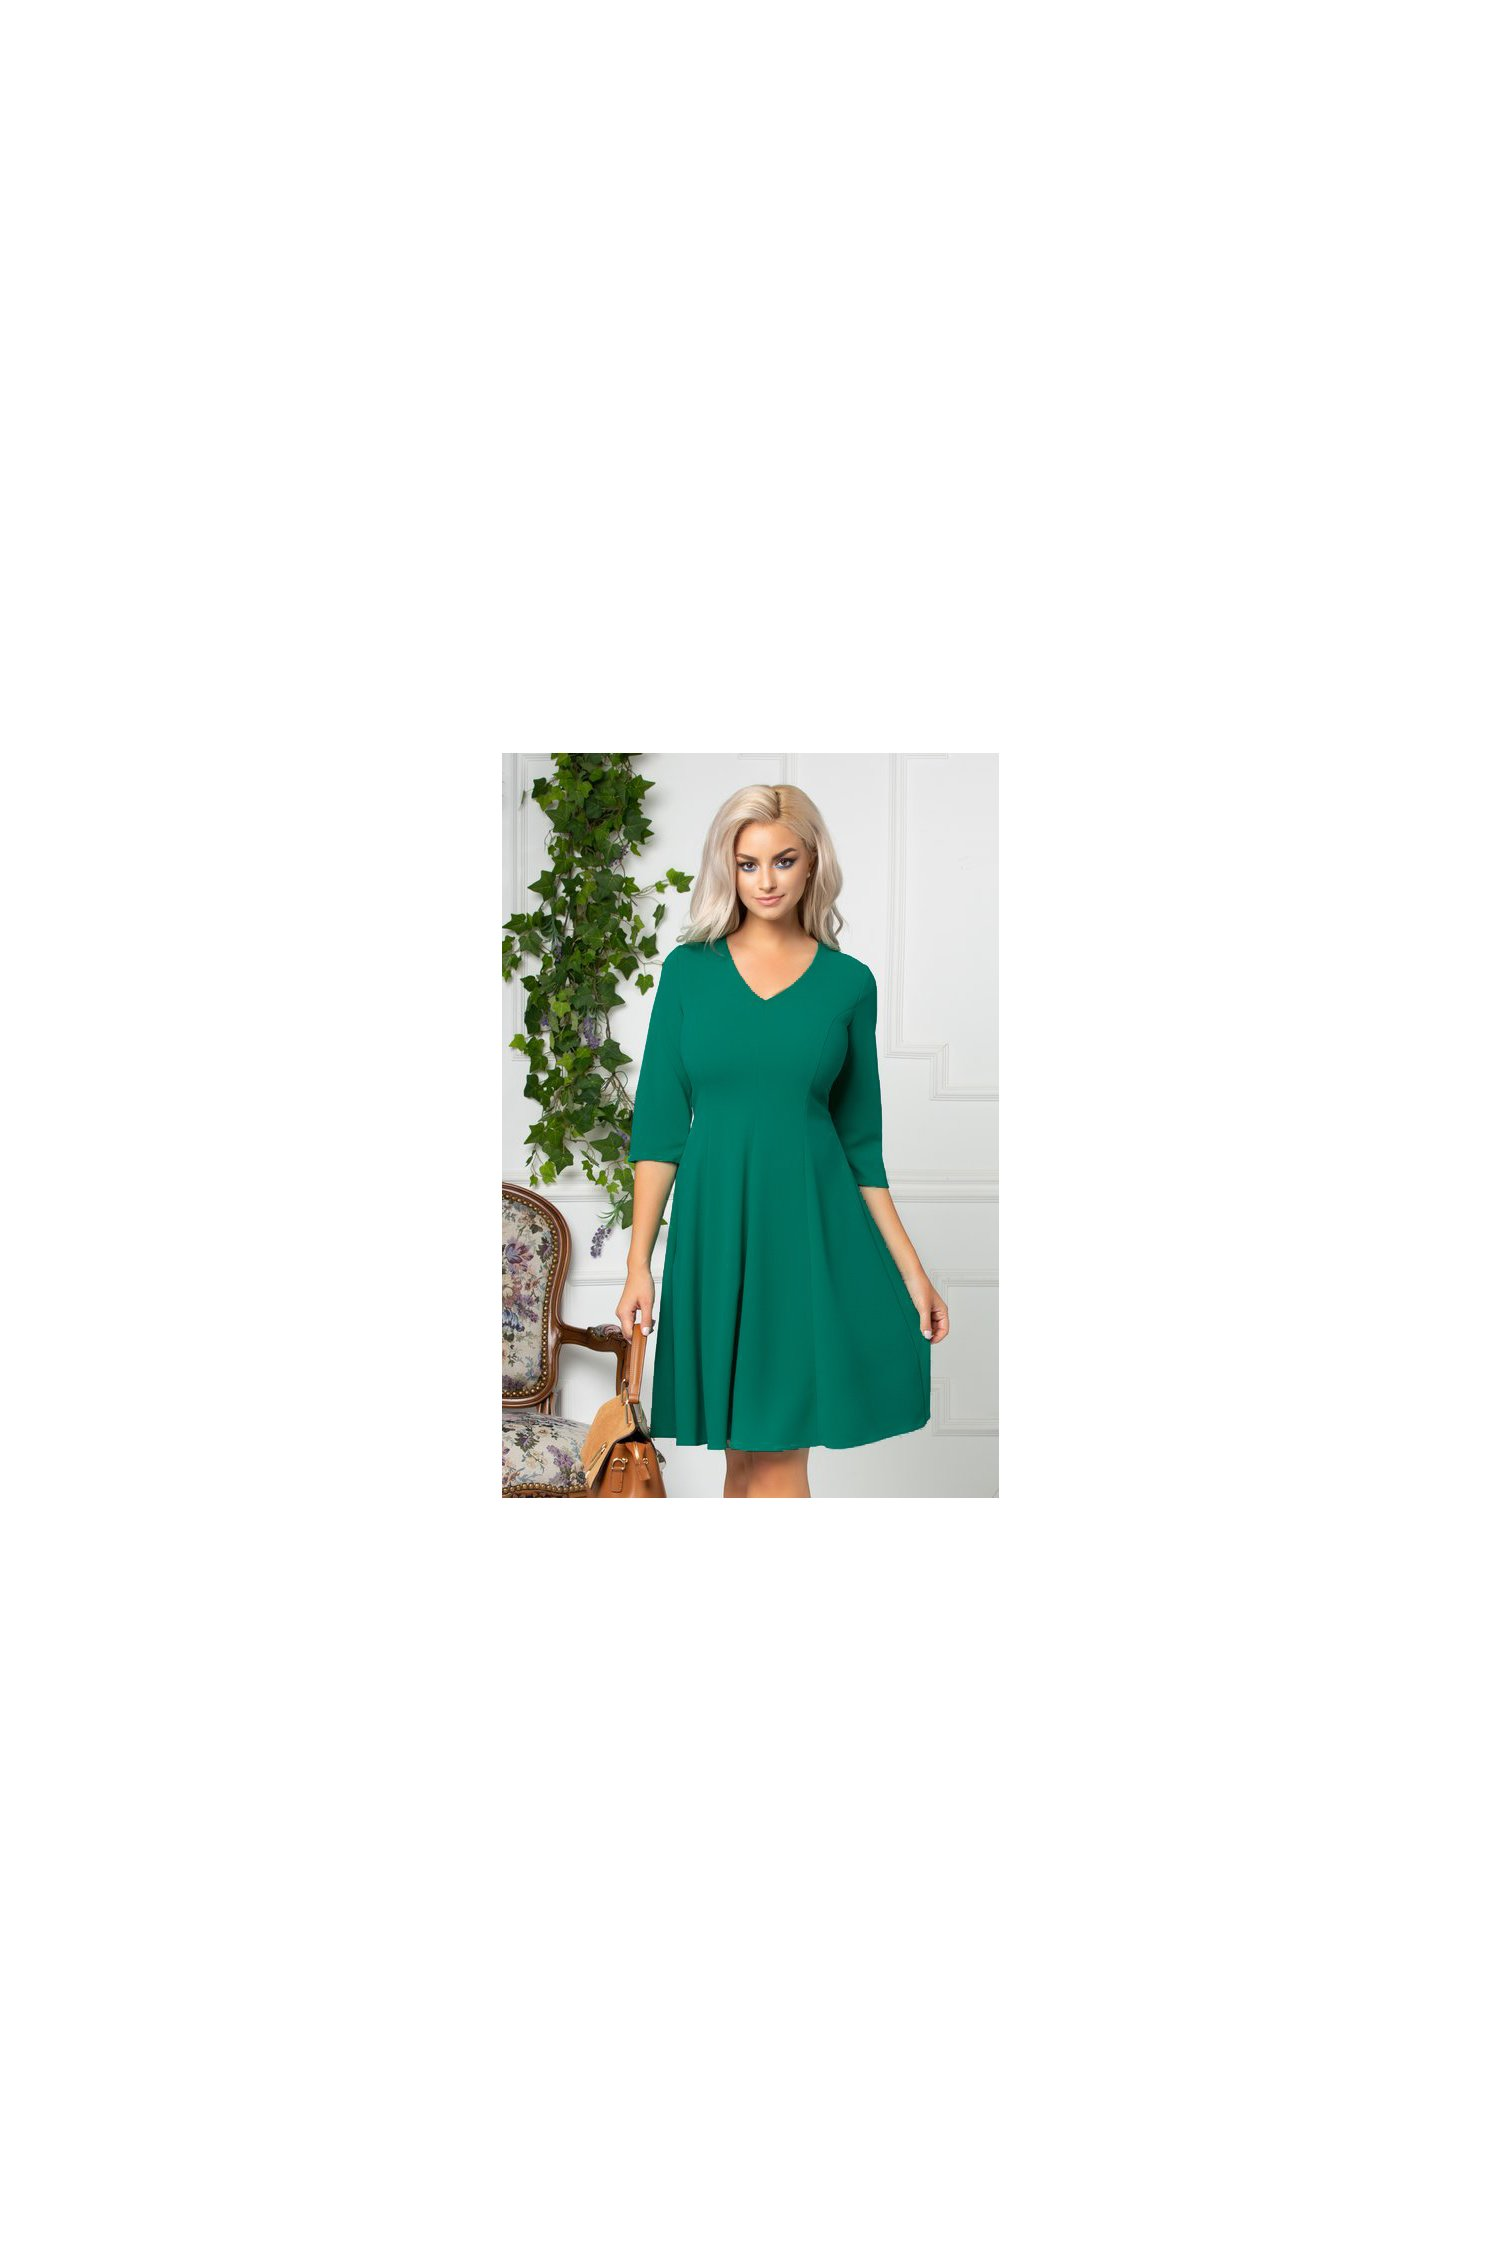 Rochie Camille office verde inchis cu manecute